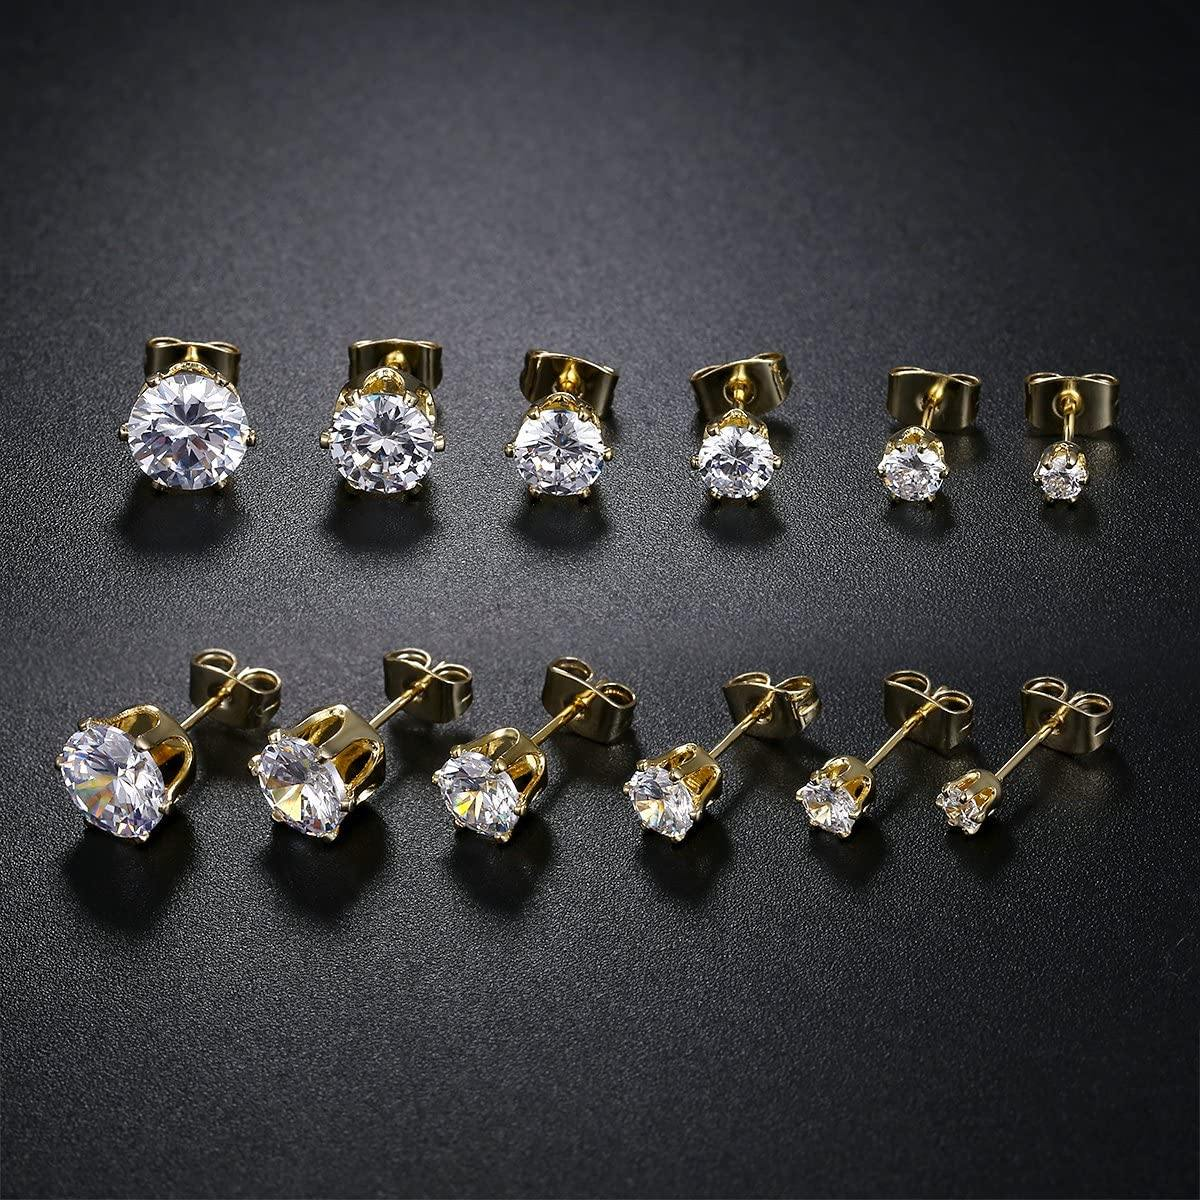 18K Yellow Gold Plated Round Cubic Zirconia Stud Earrings Pack of 6